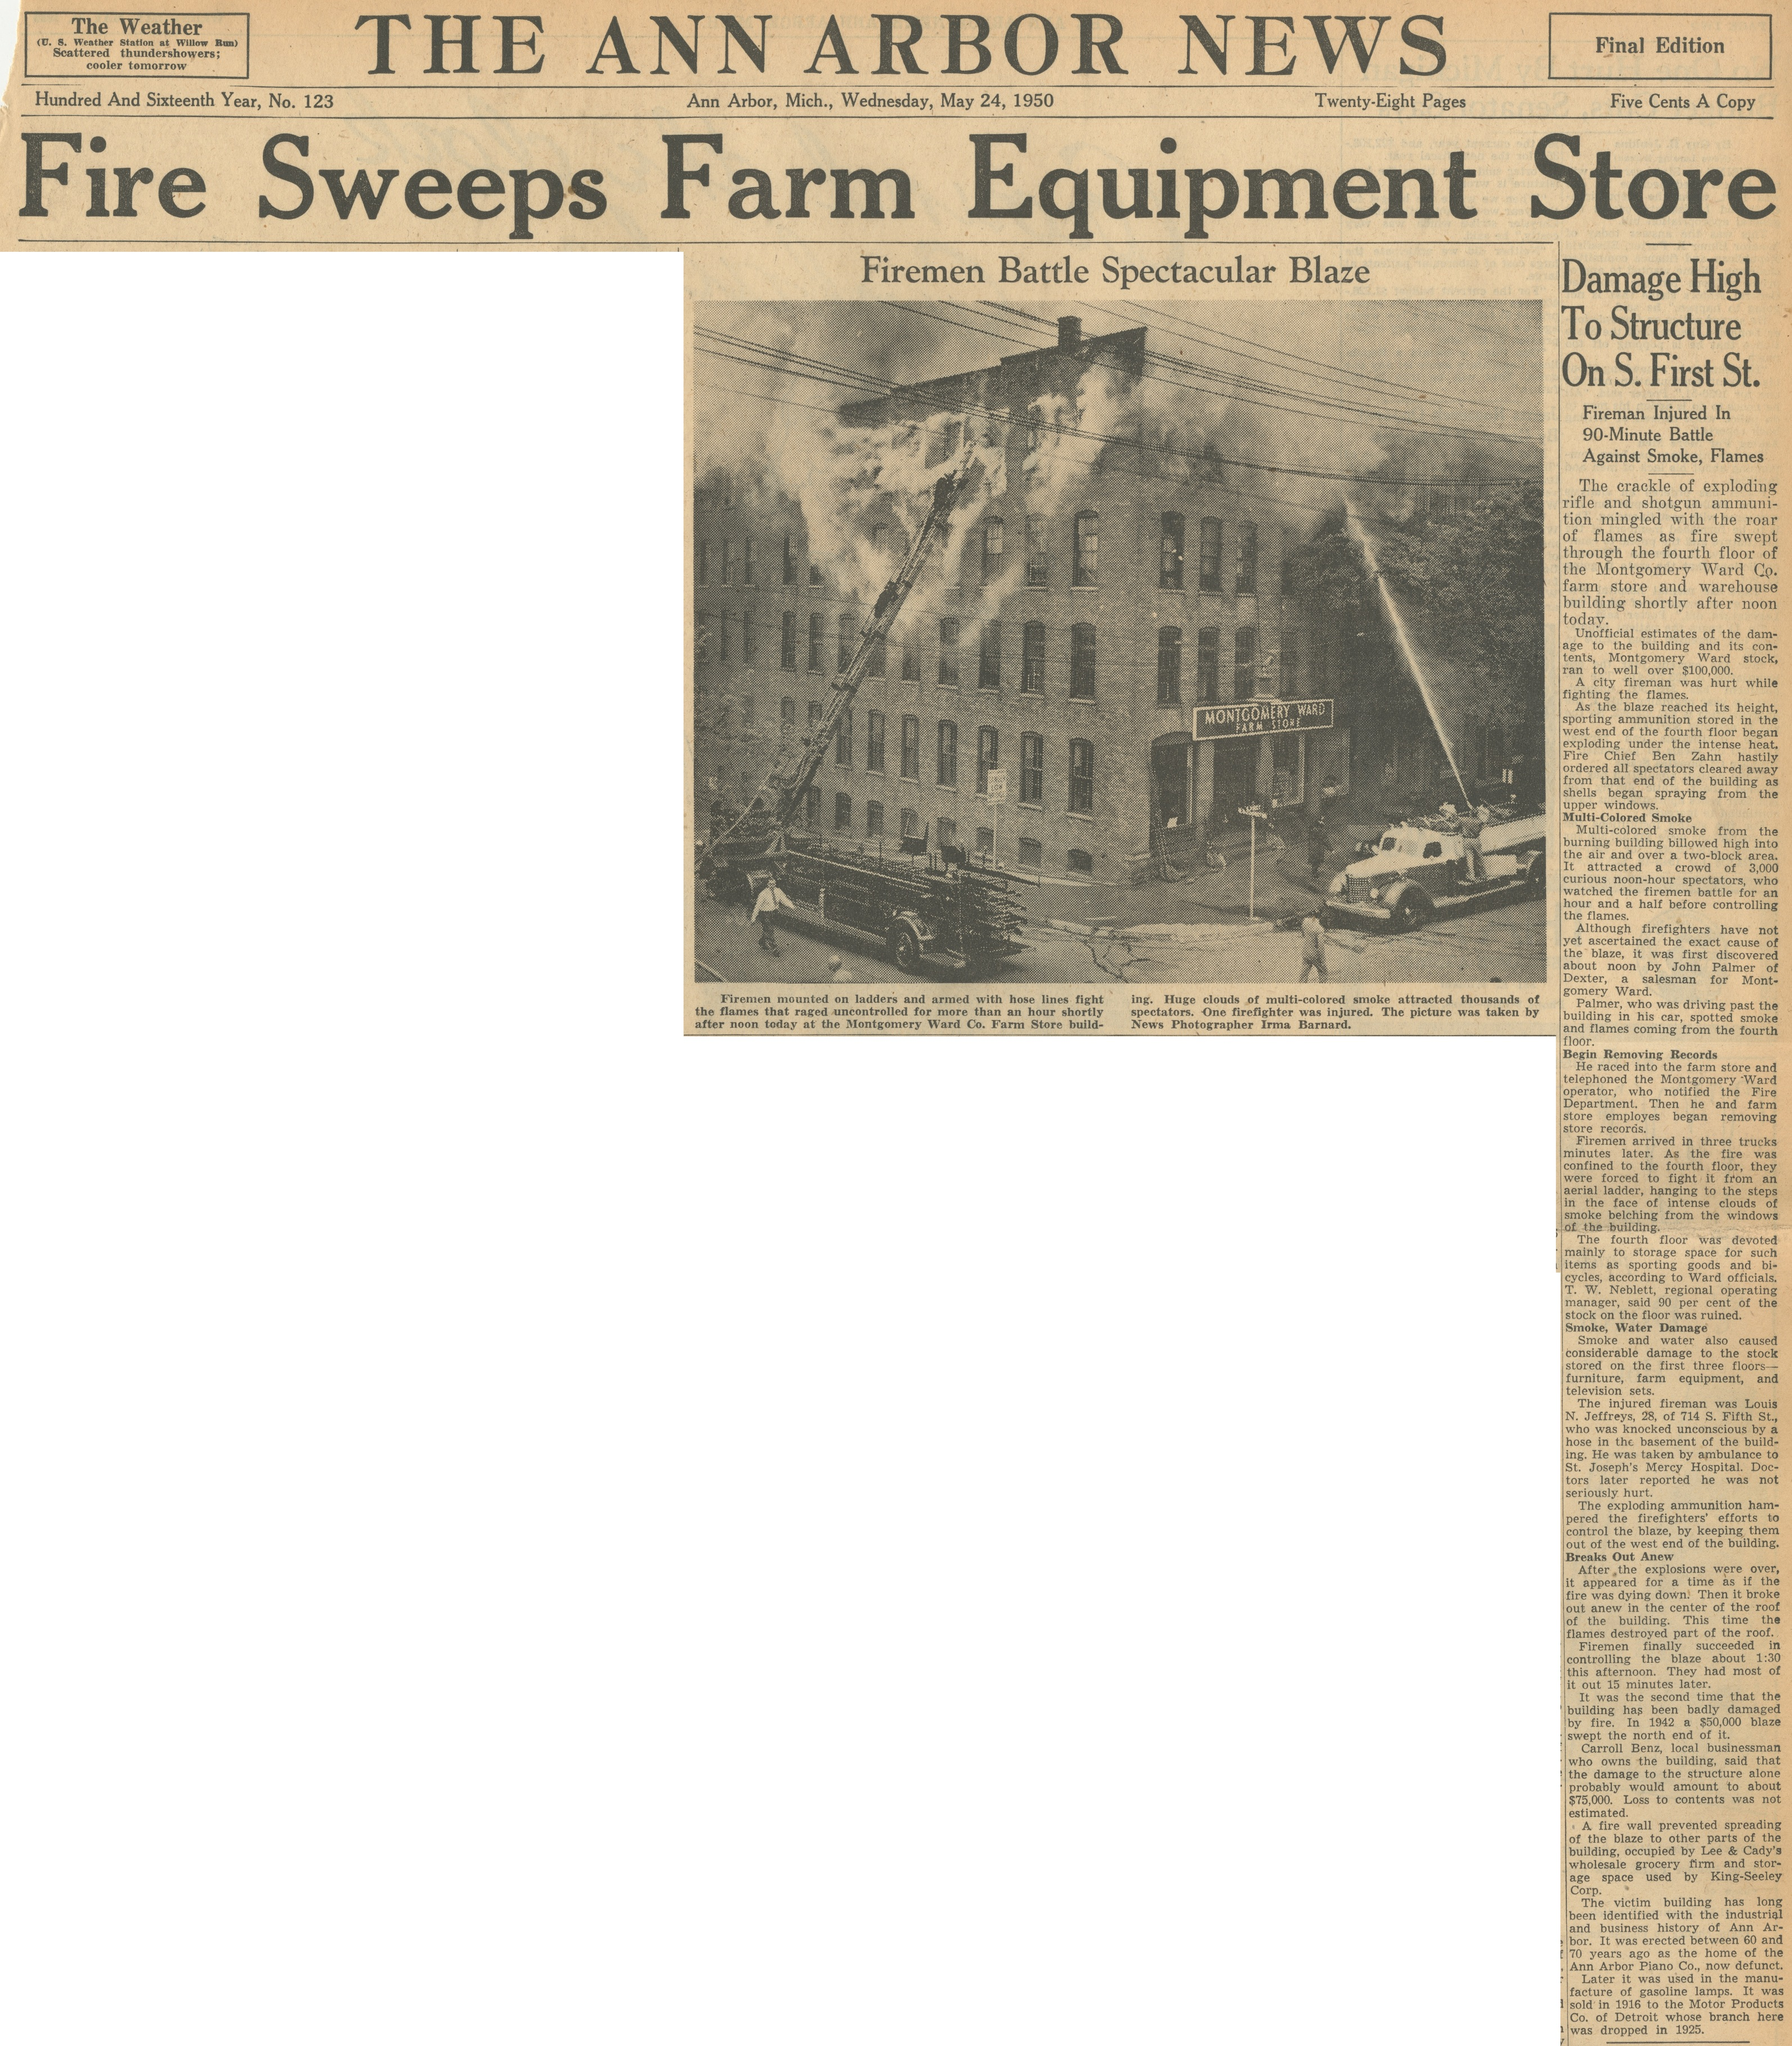 Fire Sweeps Farm Equipment Store image